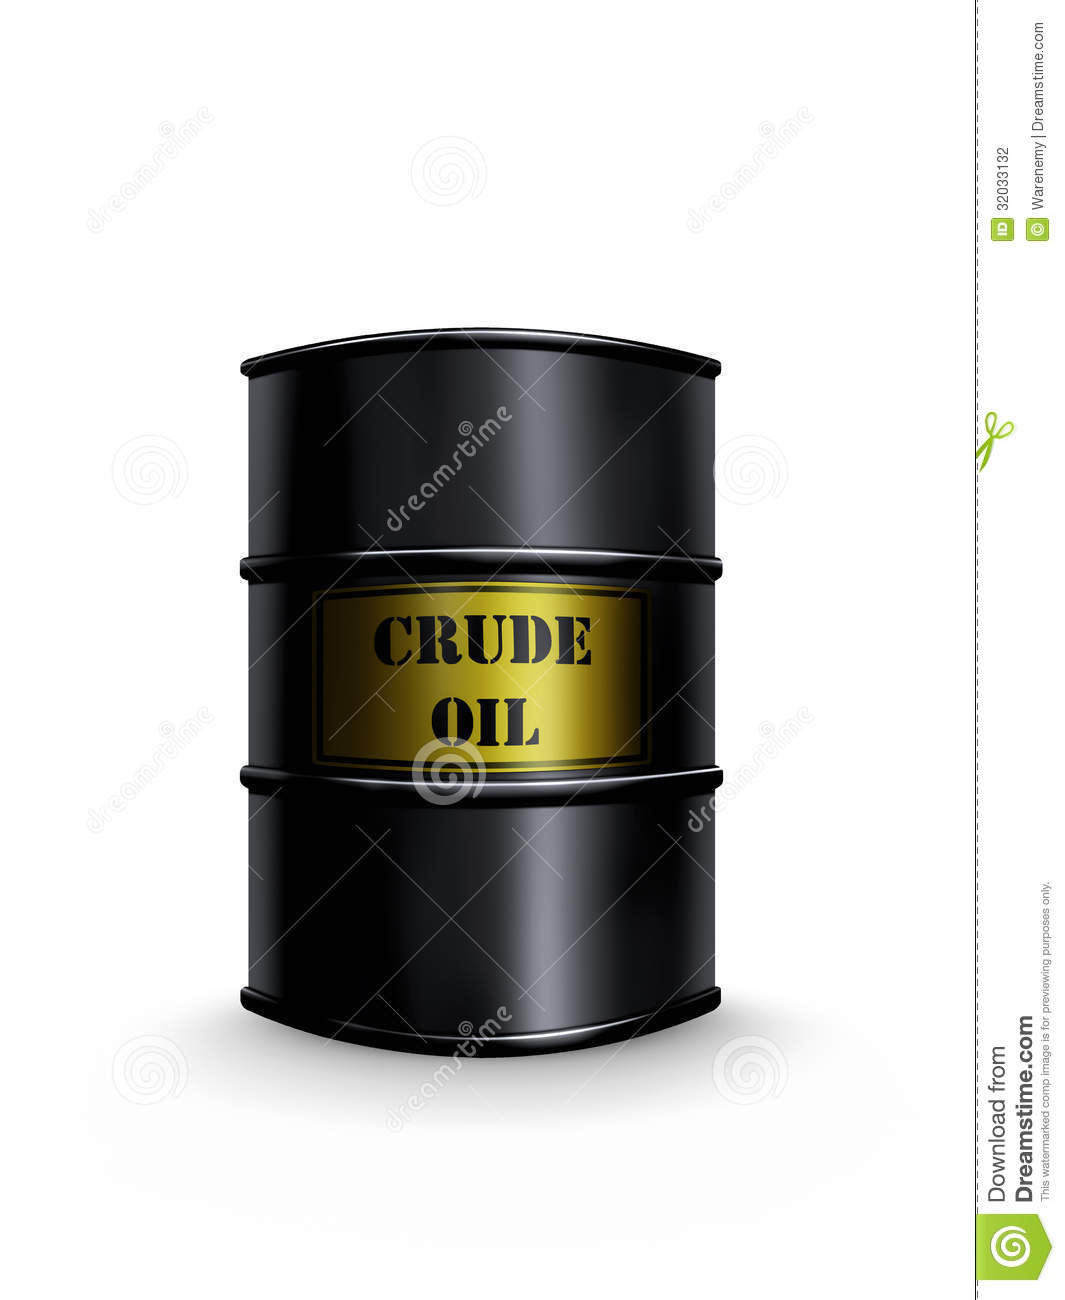 Crude Oil Barrel Stock Photography - Image: 32033132